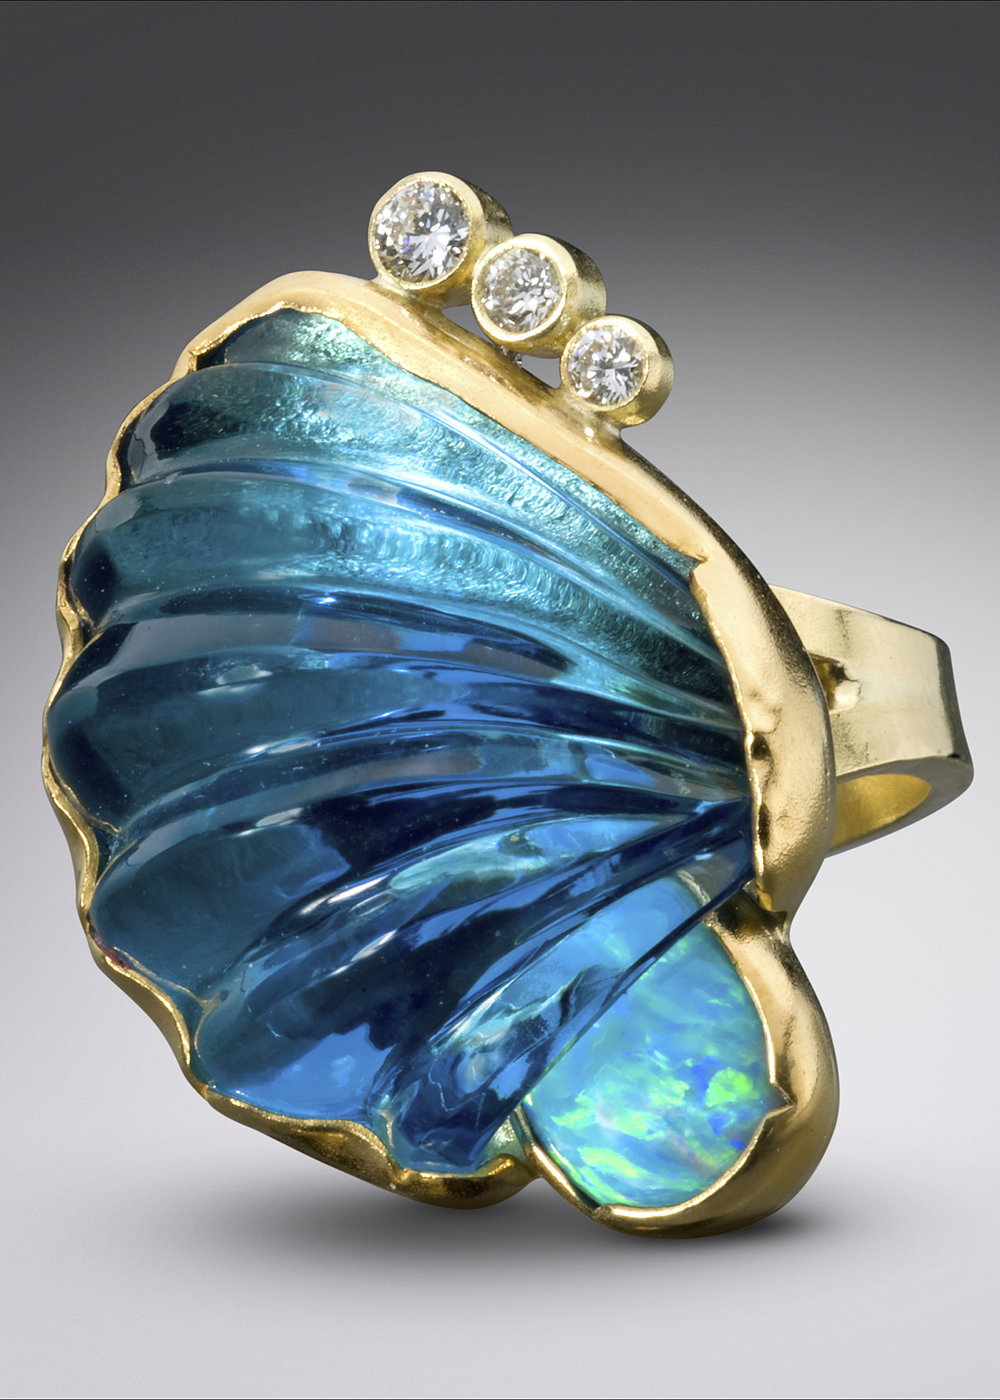 Don McCoy - http://www.donmccoyjewelry.comGem Cutter and Metalsmith, I hand fabricate settings from recycled silver and gold for the gemstones I carve and inlay.